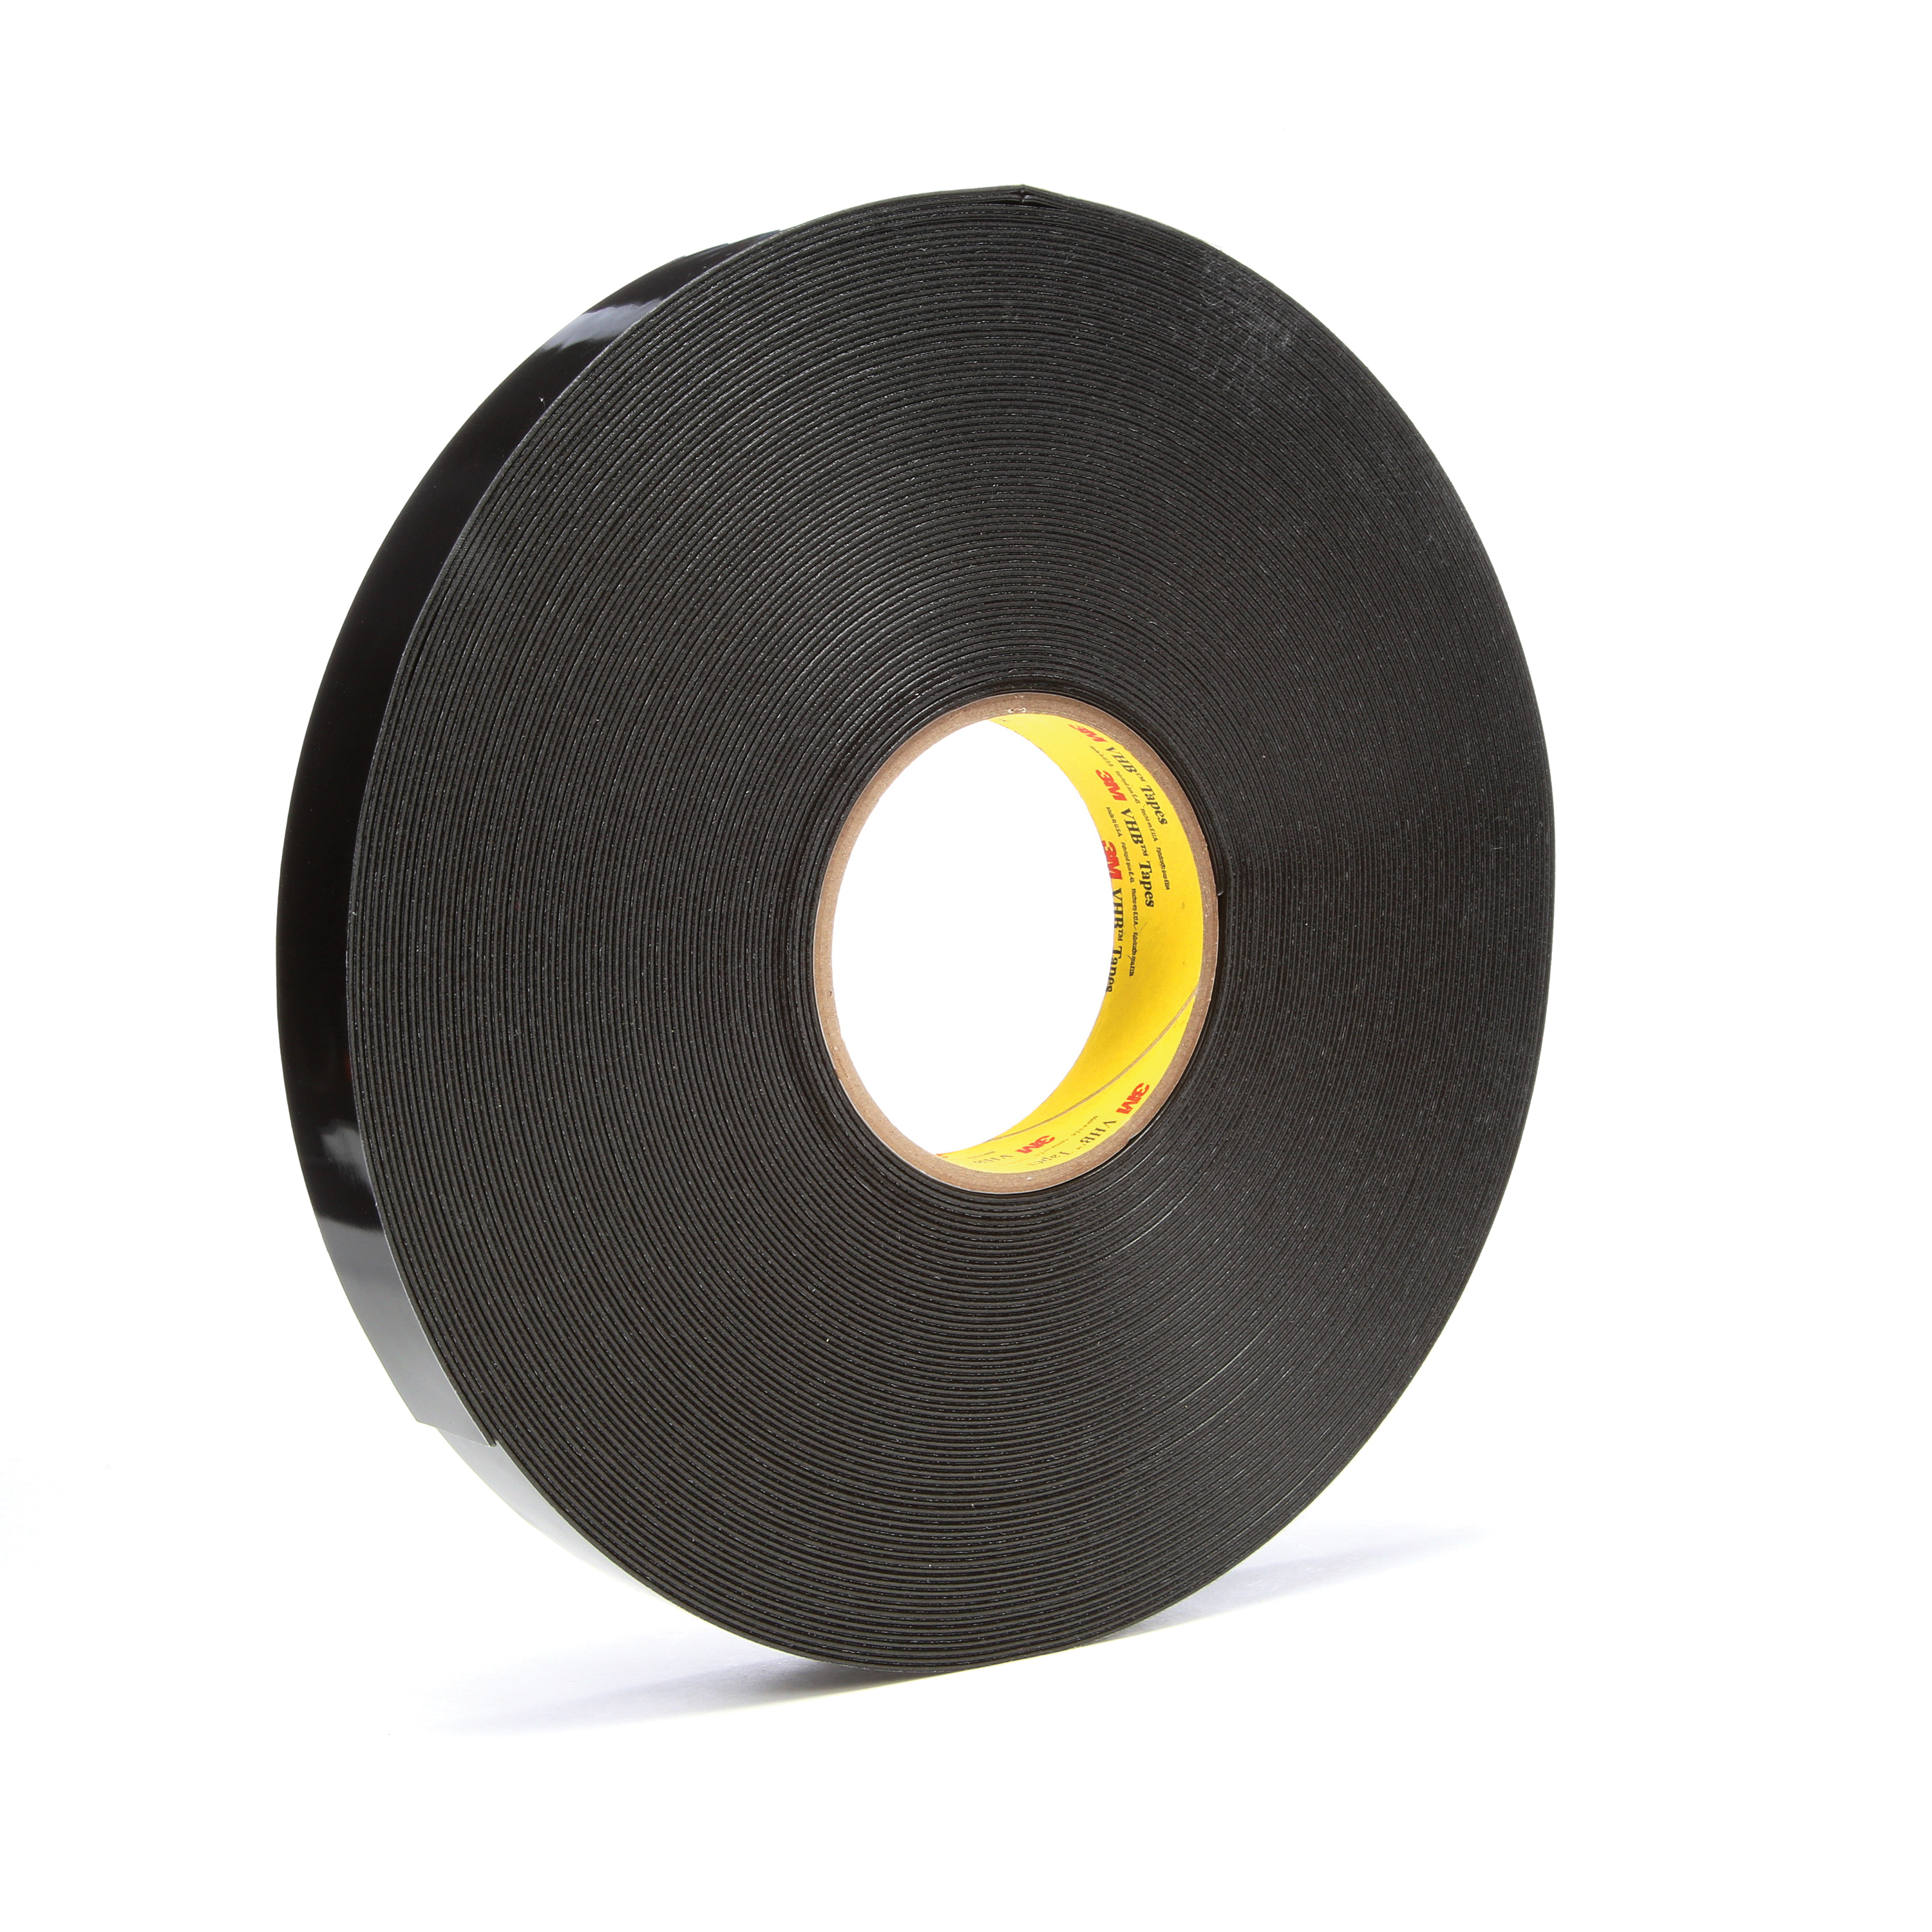 3M™ VHB™ 021200-67496 High Strength Double Sided Bonding Tape, 36 yd L x 1 in W, 0.045 in THK, General Purpose Acrylic Adhesive, Acrylic Foam Backing, Black